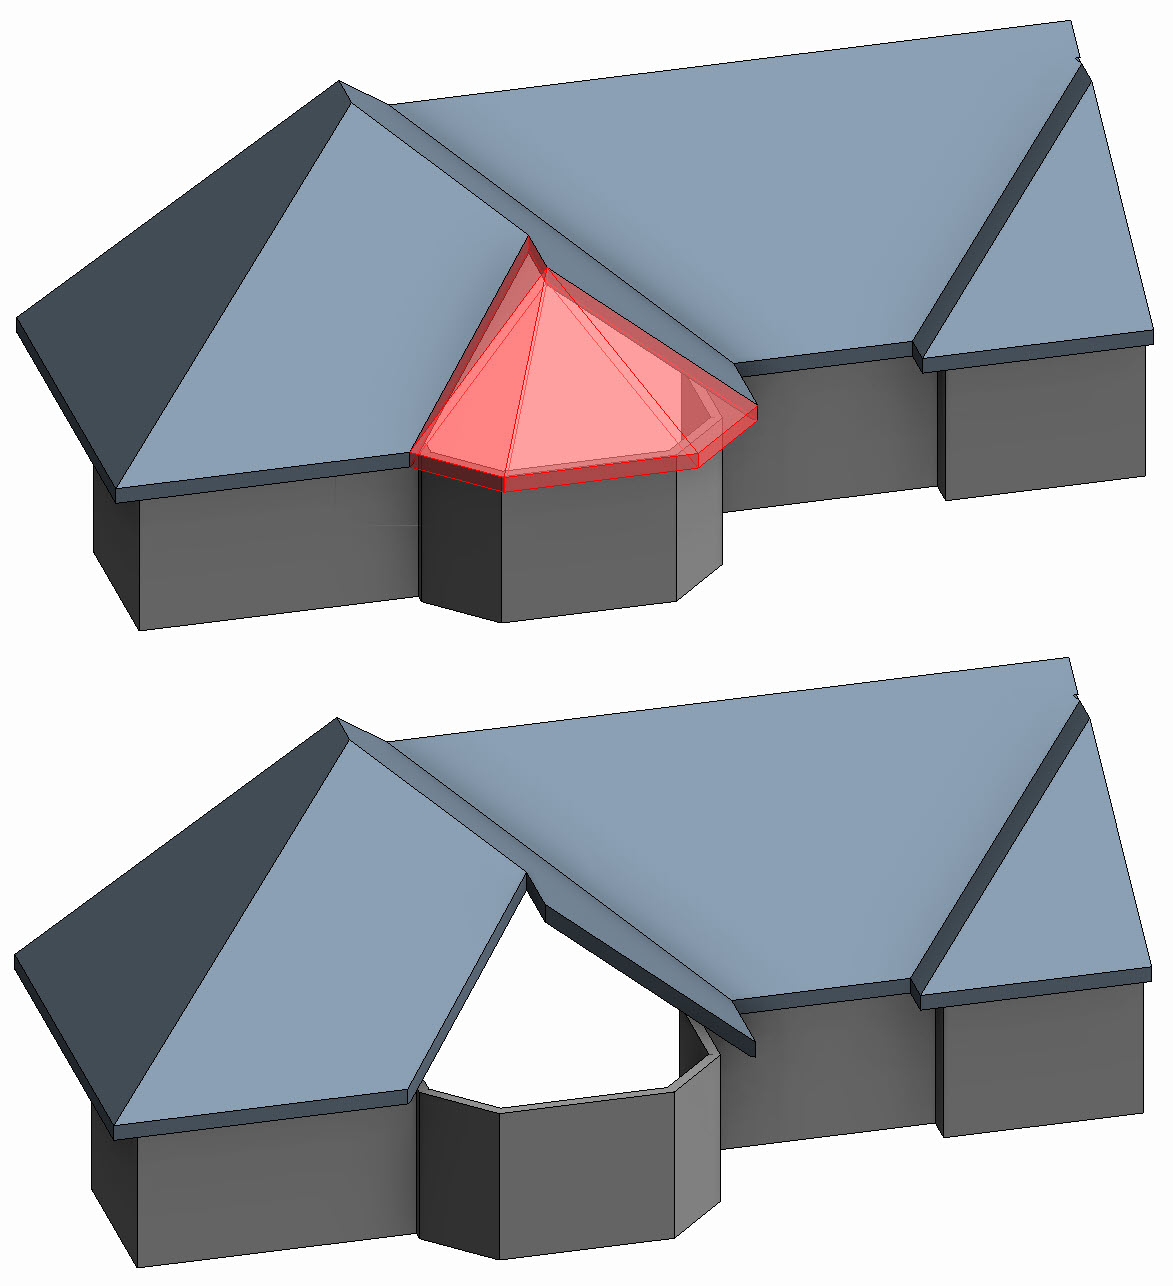 Revit Oped Five Minutes With Shape Editing A Bay Roof